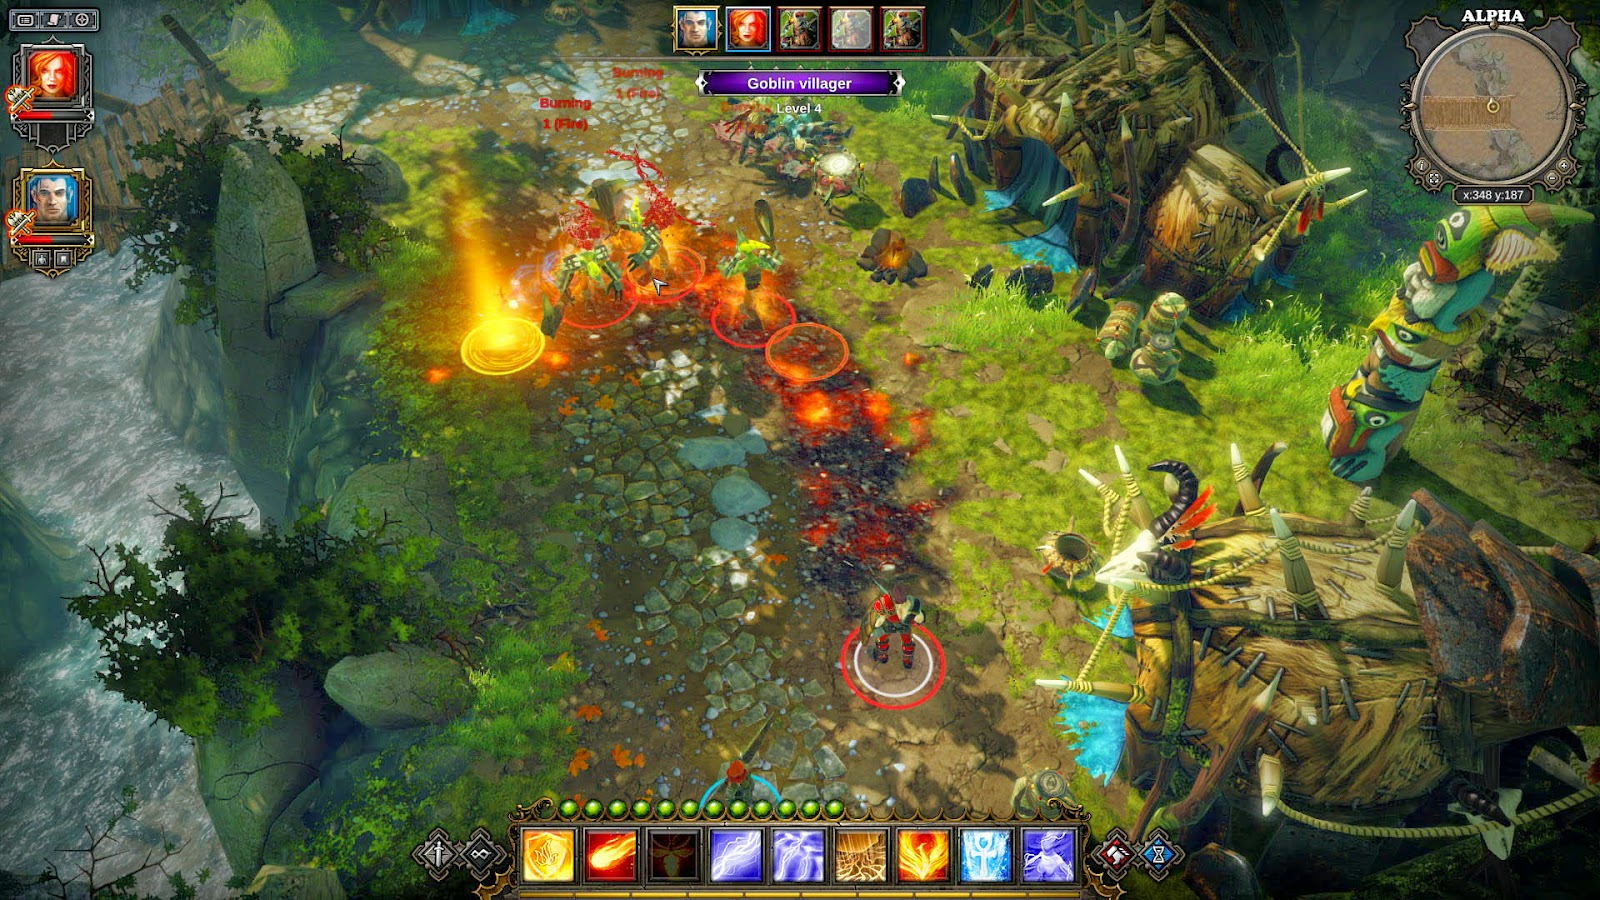 Download Game Divinity Original Sin Full Crack Single Link Terbaru